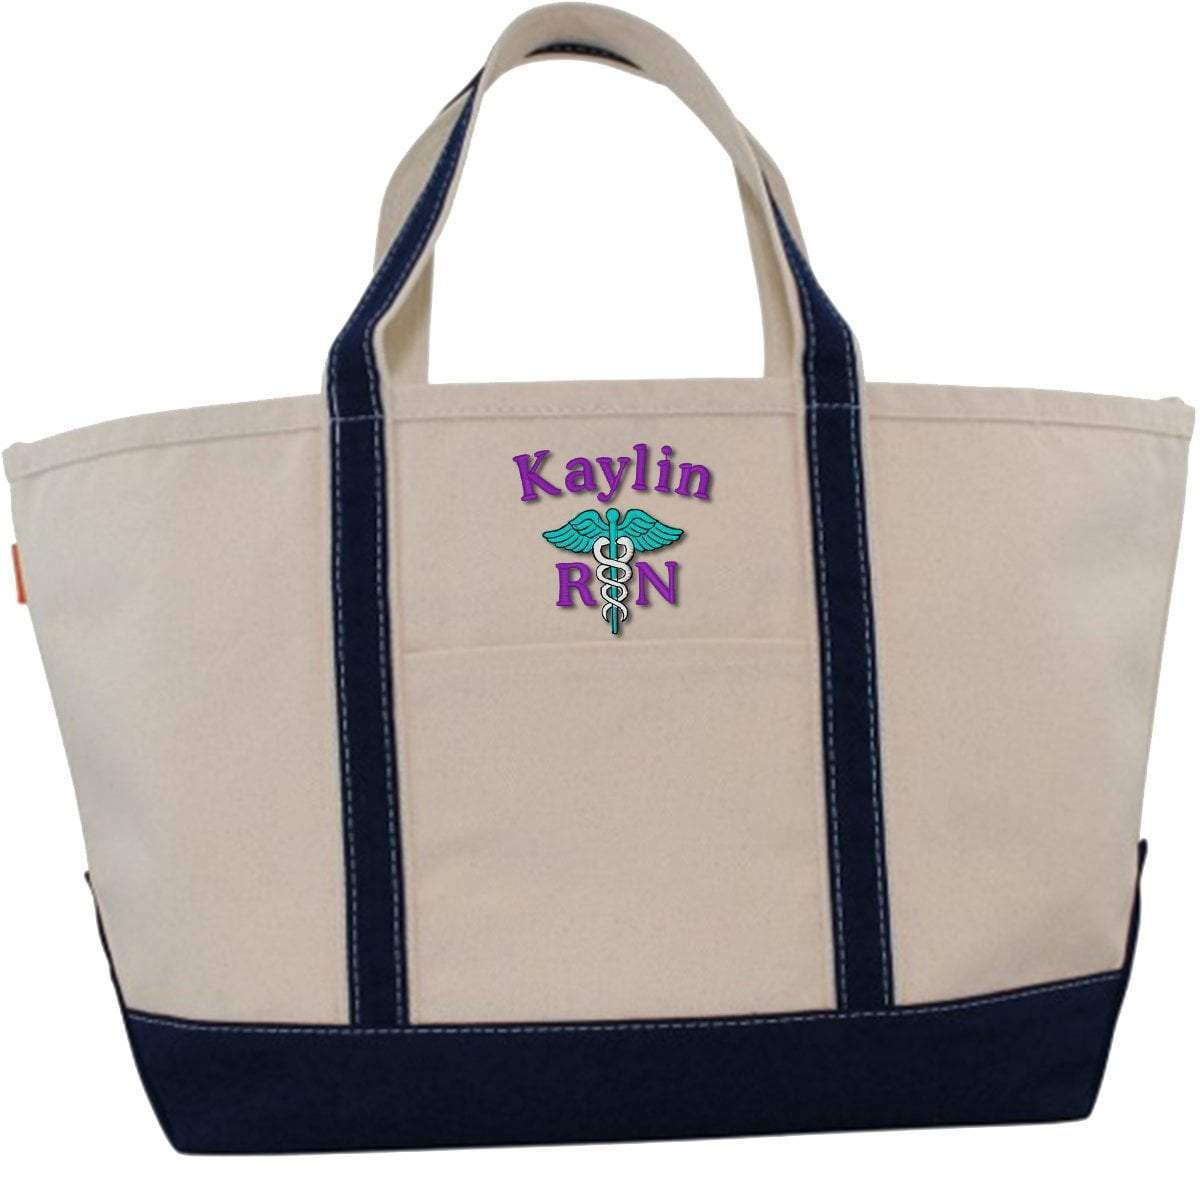 CB Station Bags Large Tote / Navy 5020 | Customized Boat Tote from CB Station